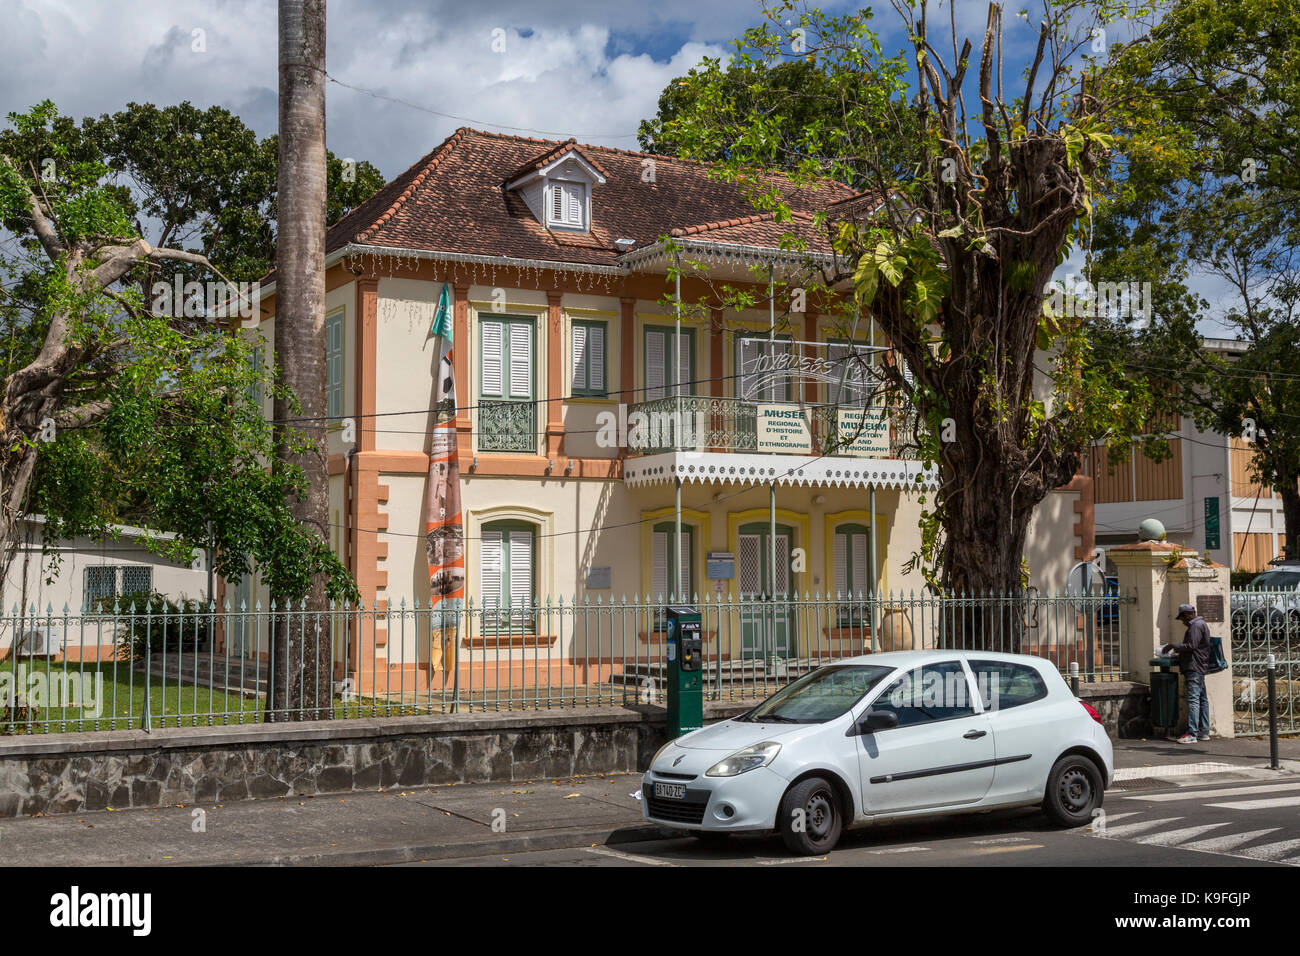 Fort-de-France, Martinique.  Museum of History and Ethnography. - Stock Image